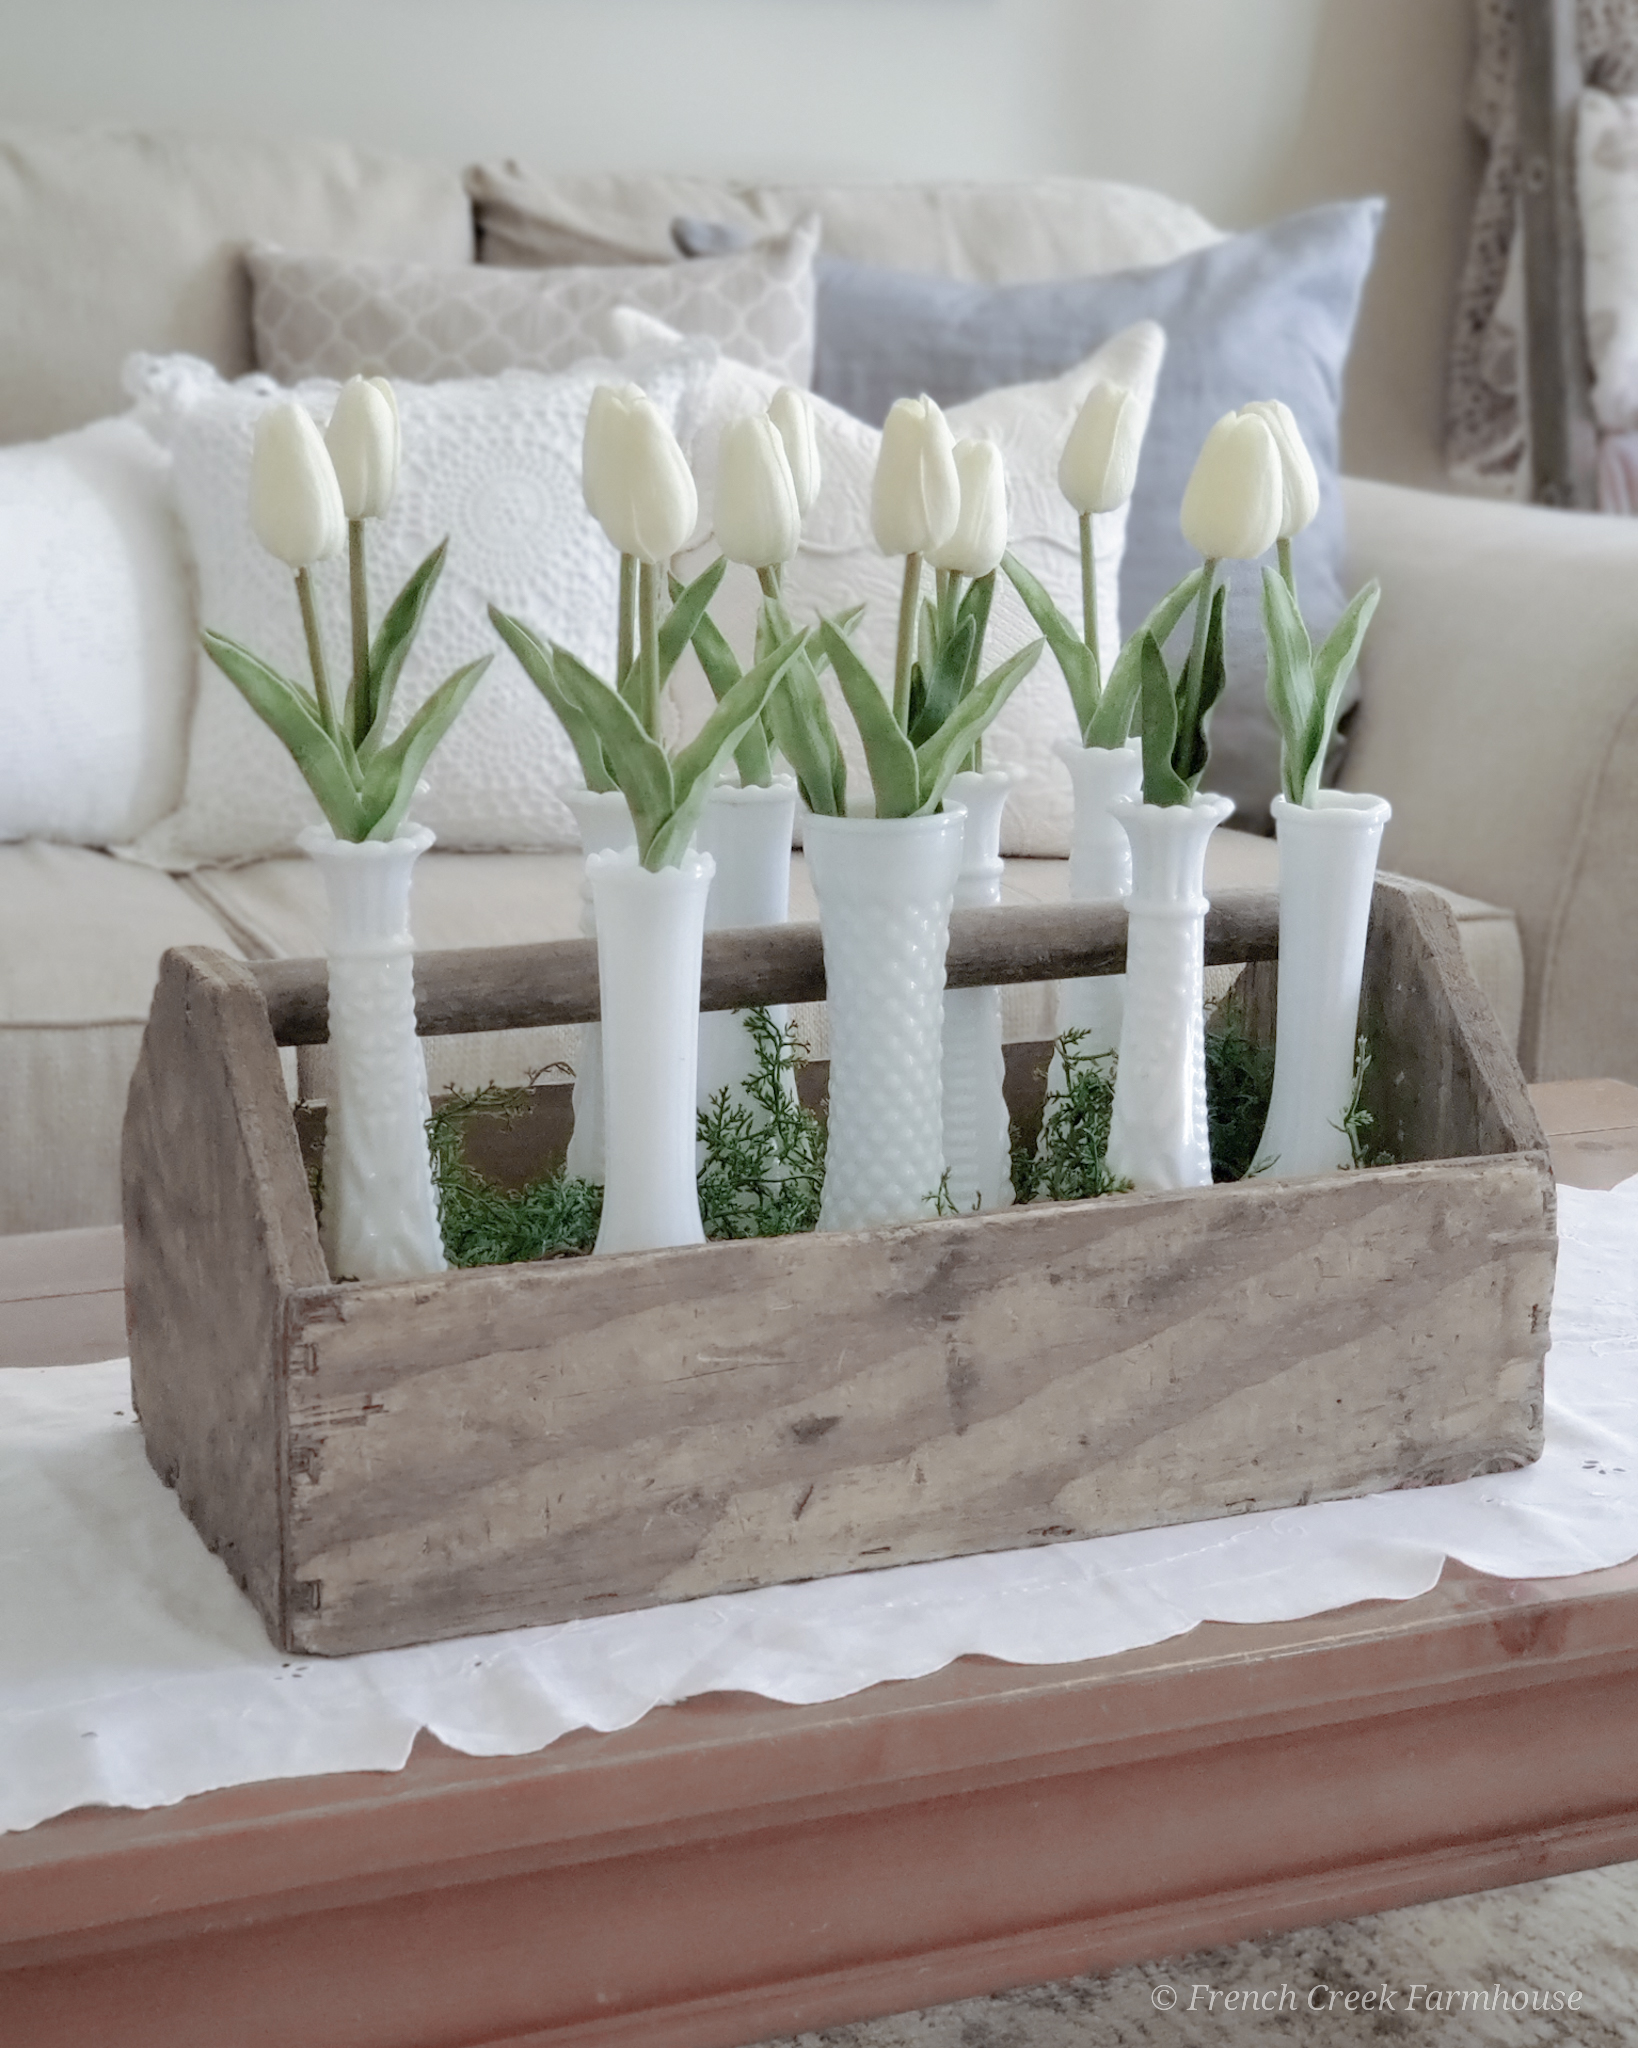 Modern farmhouse spring living room with white tulips and milk glass vases in wood toolbox